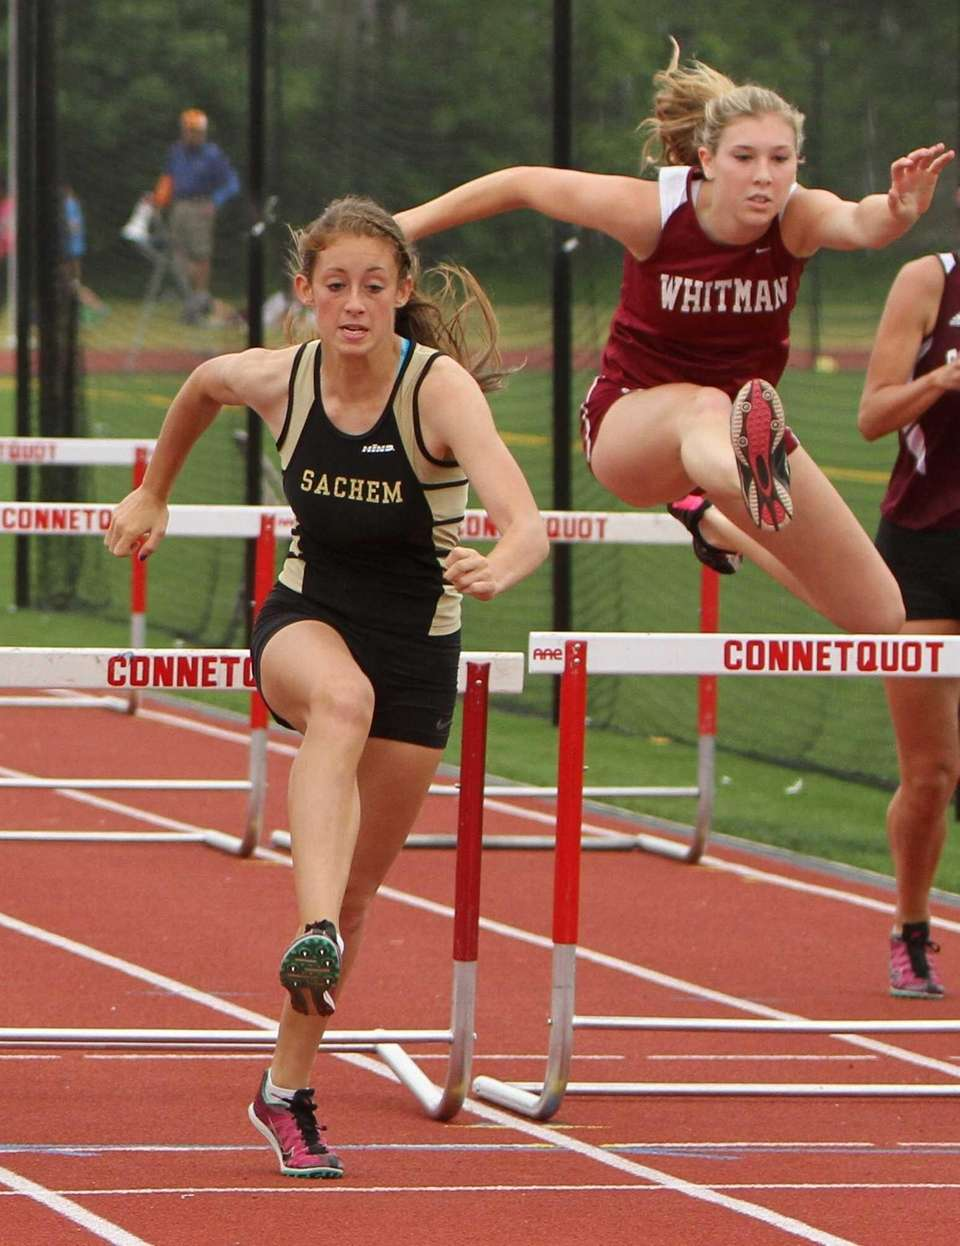 Nikki Fogearty of Sachem North clears the last